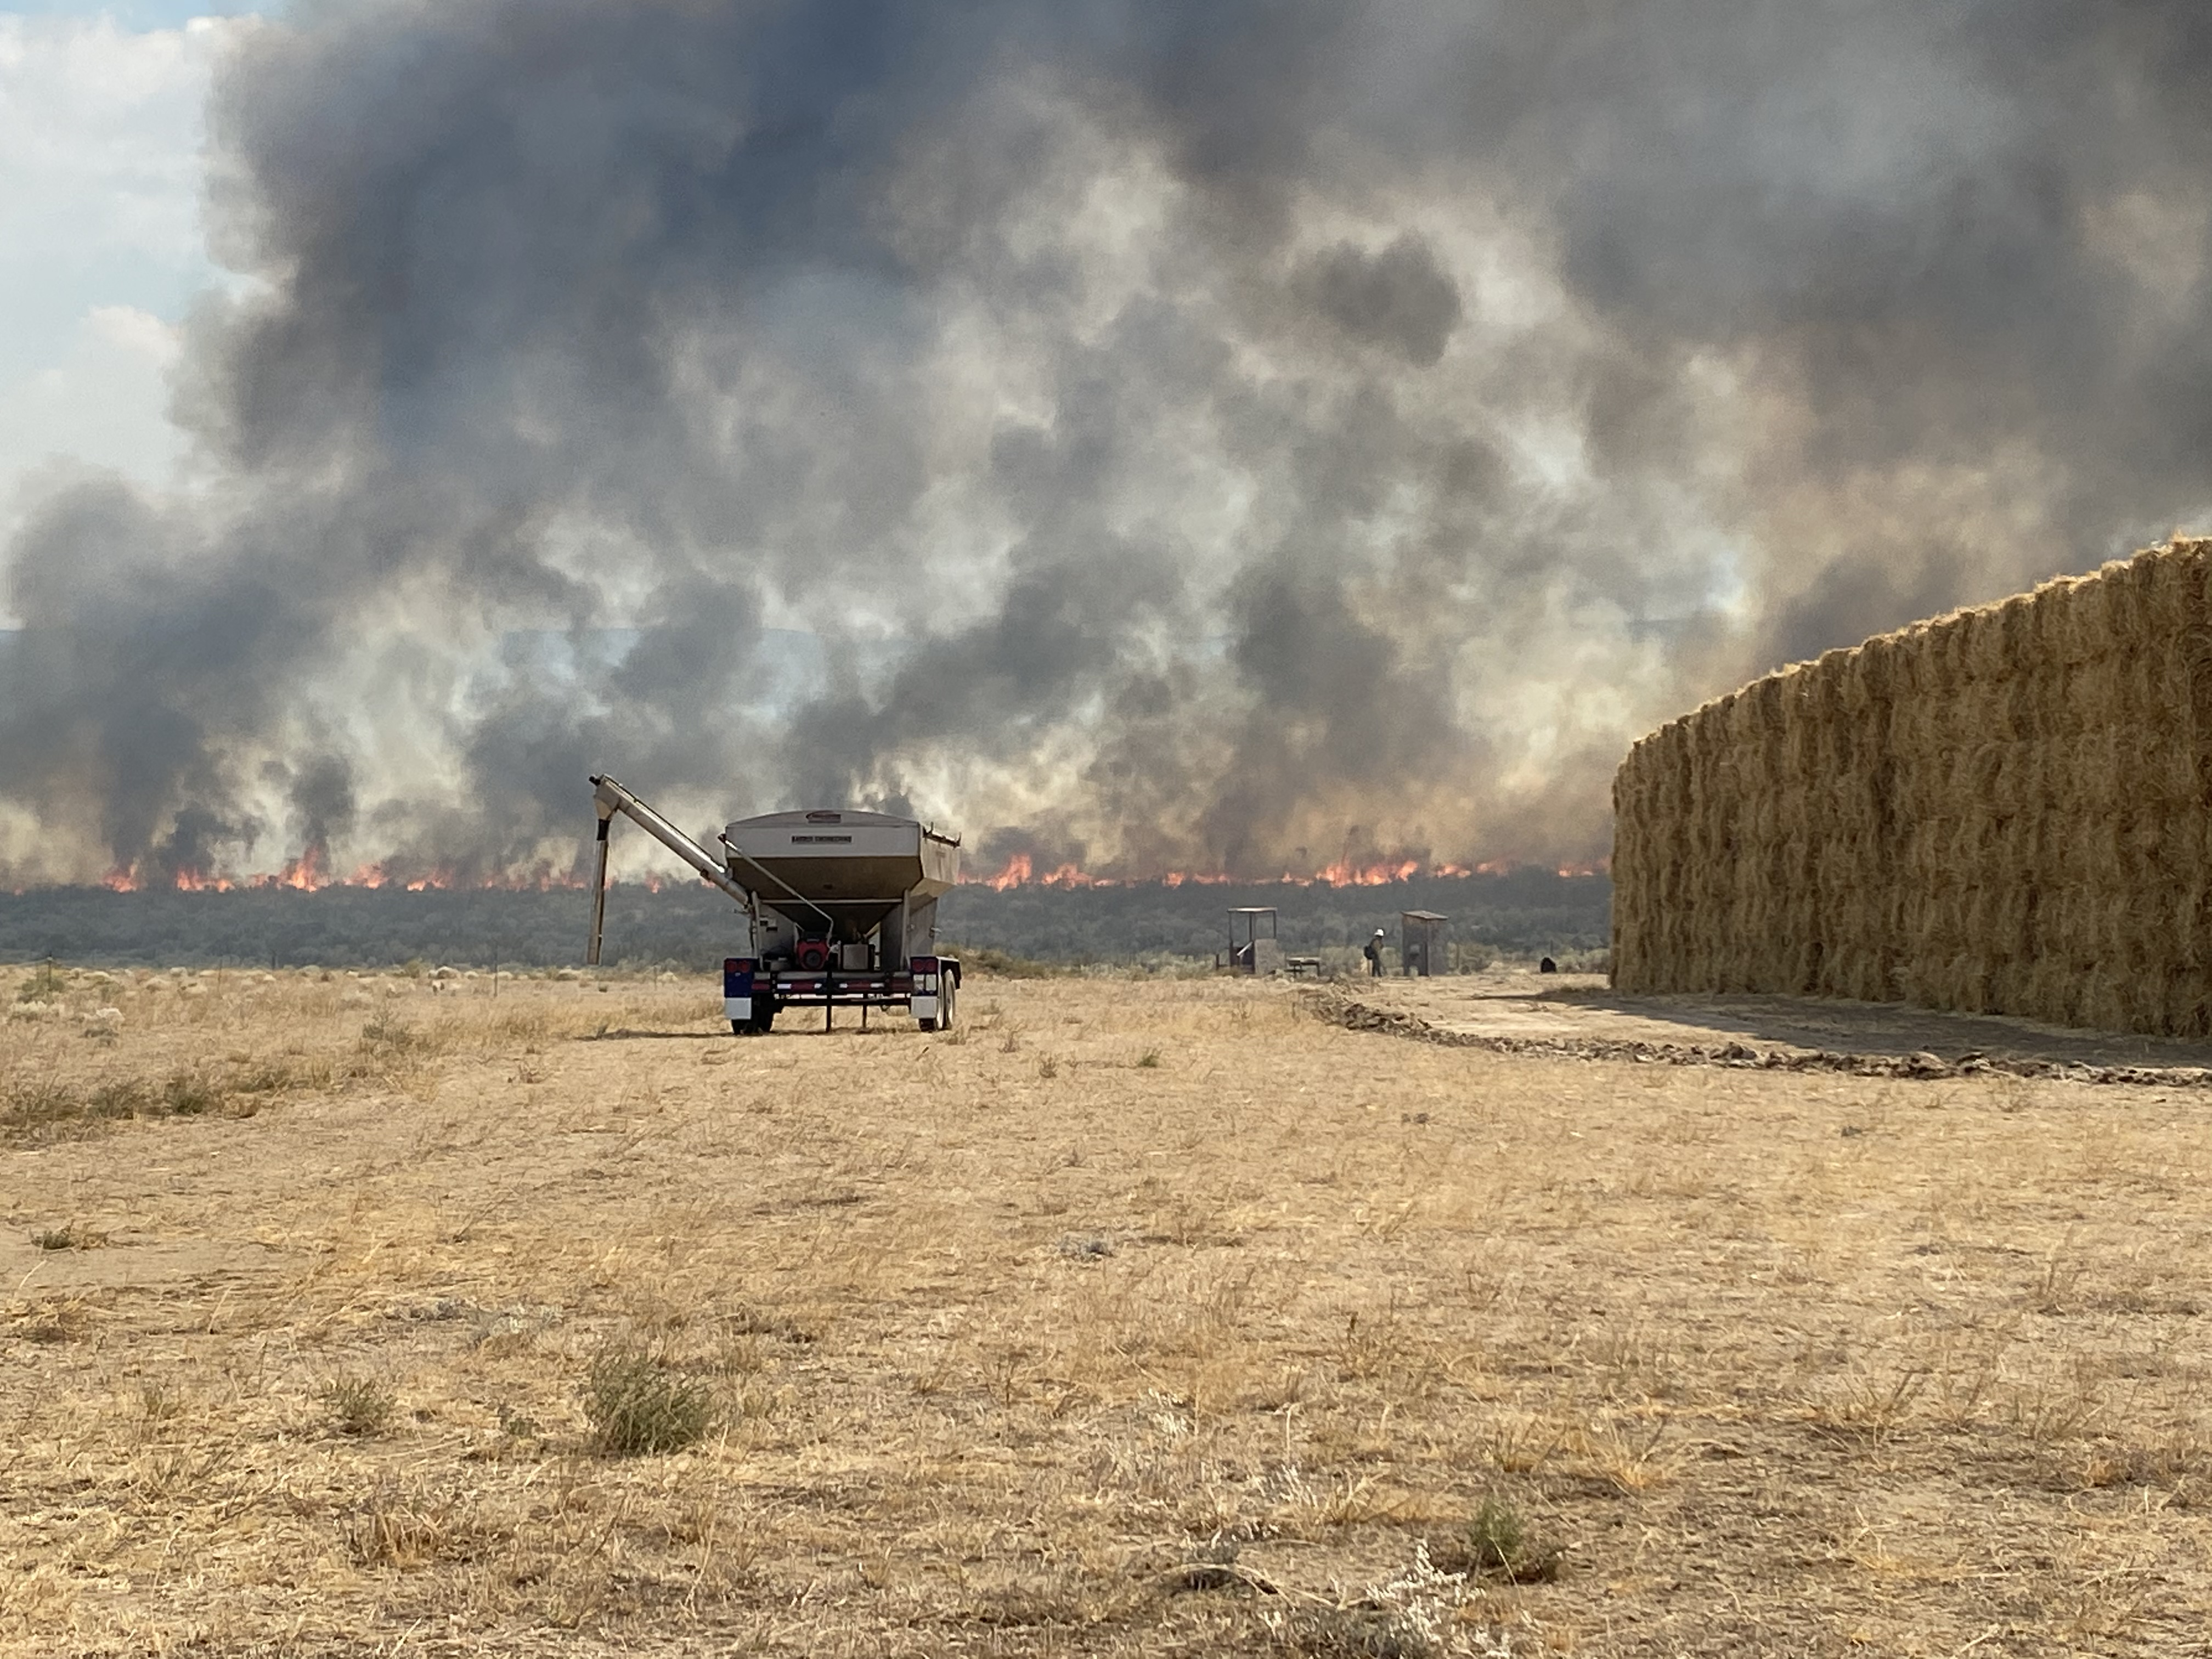 Cold Springs fire heading towards hay stacks